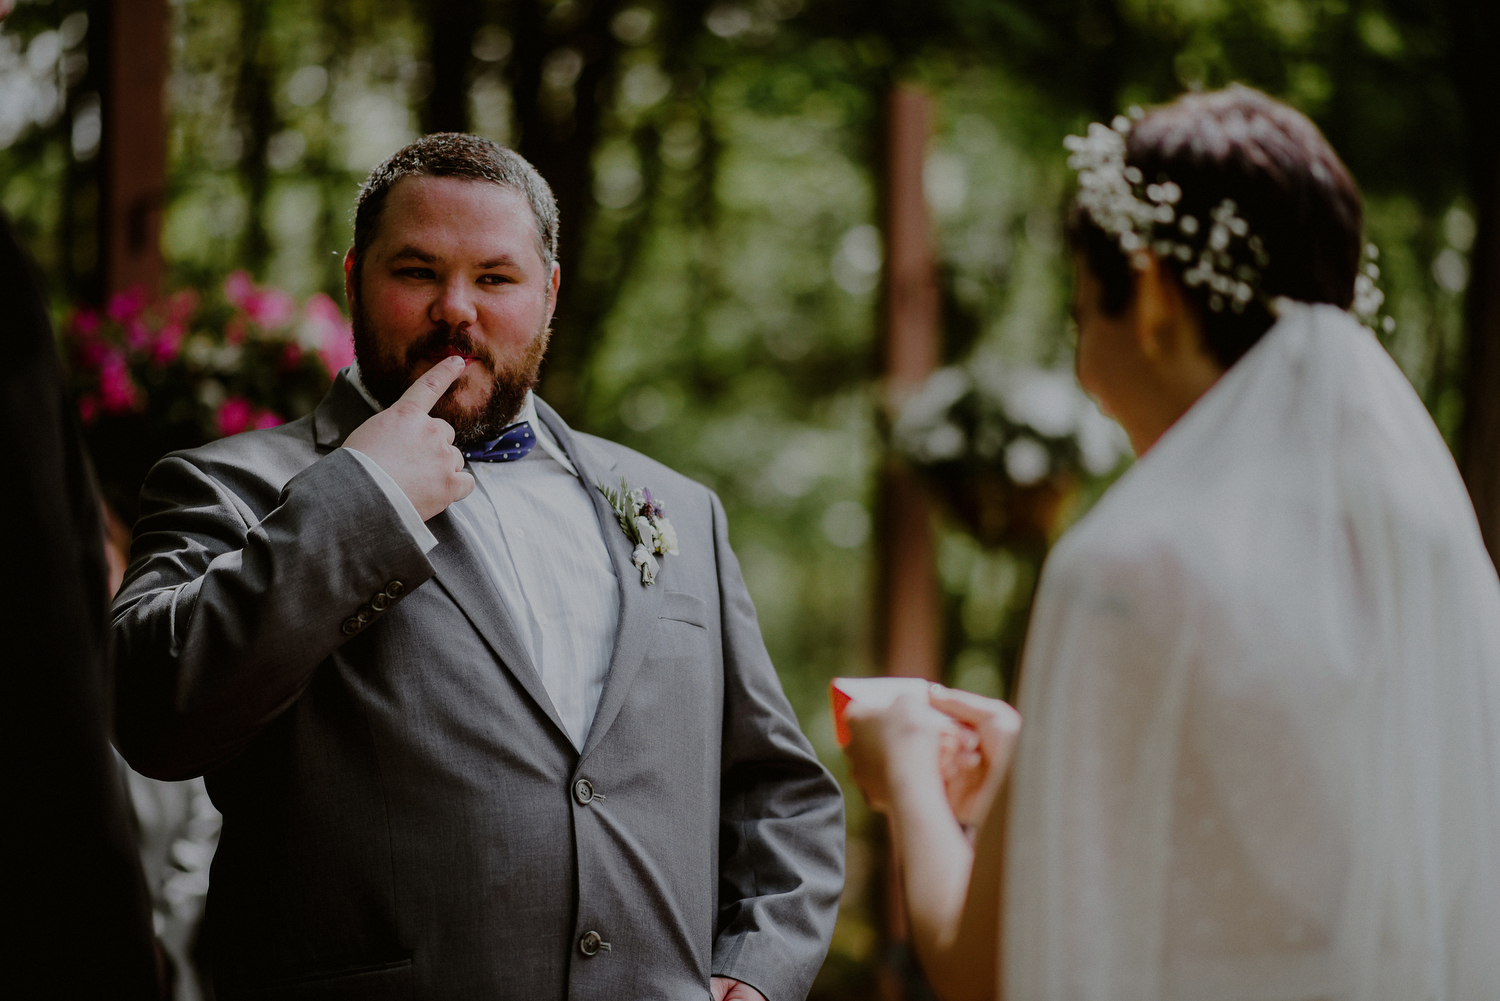 candid wedding photos of groom during ceremony